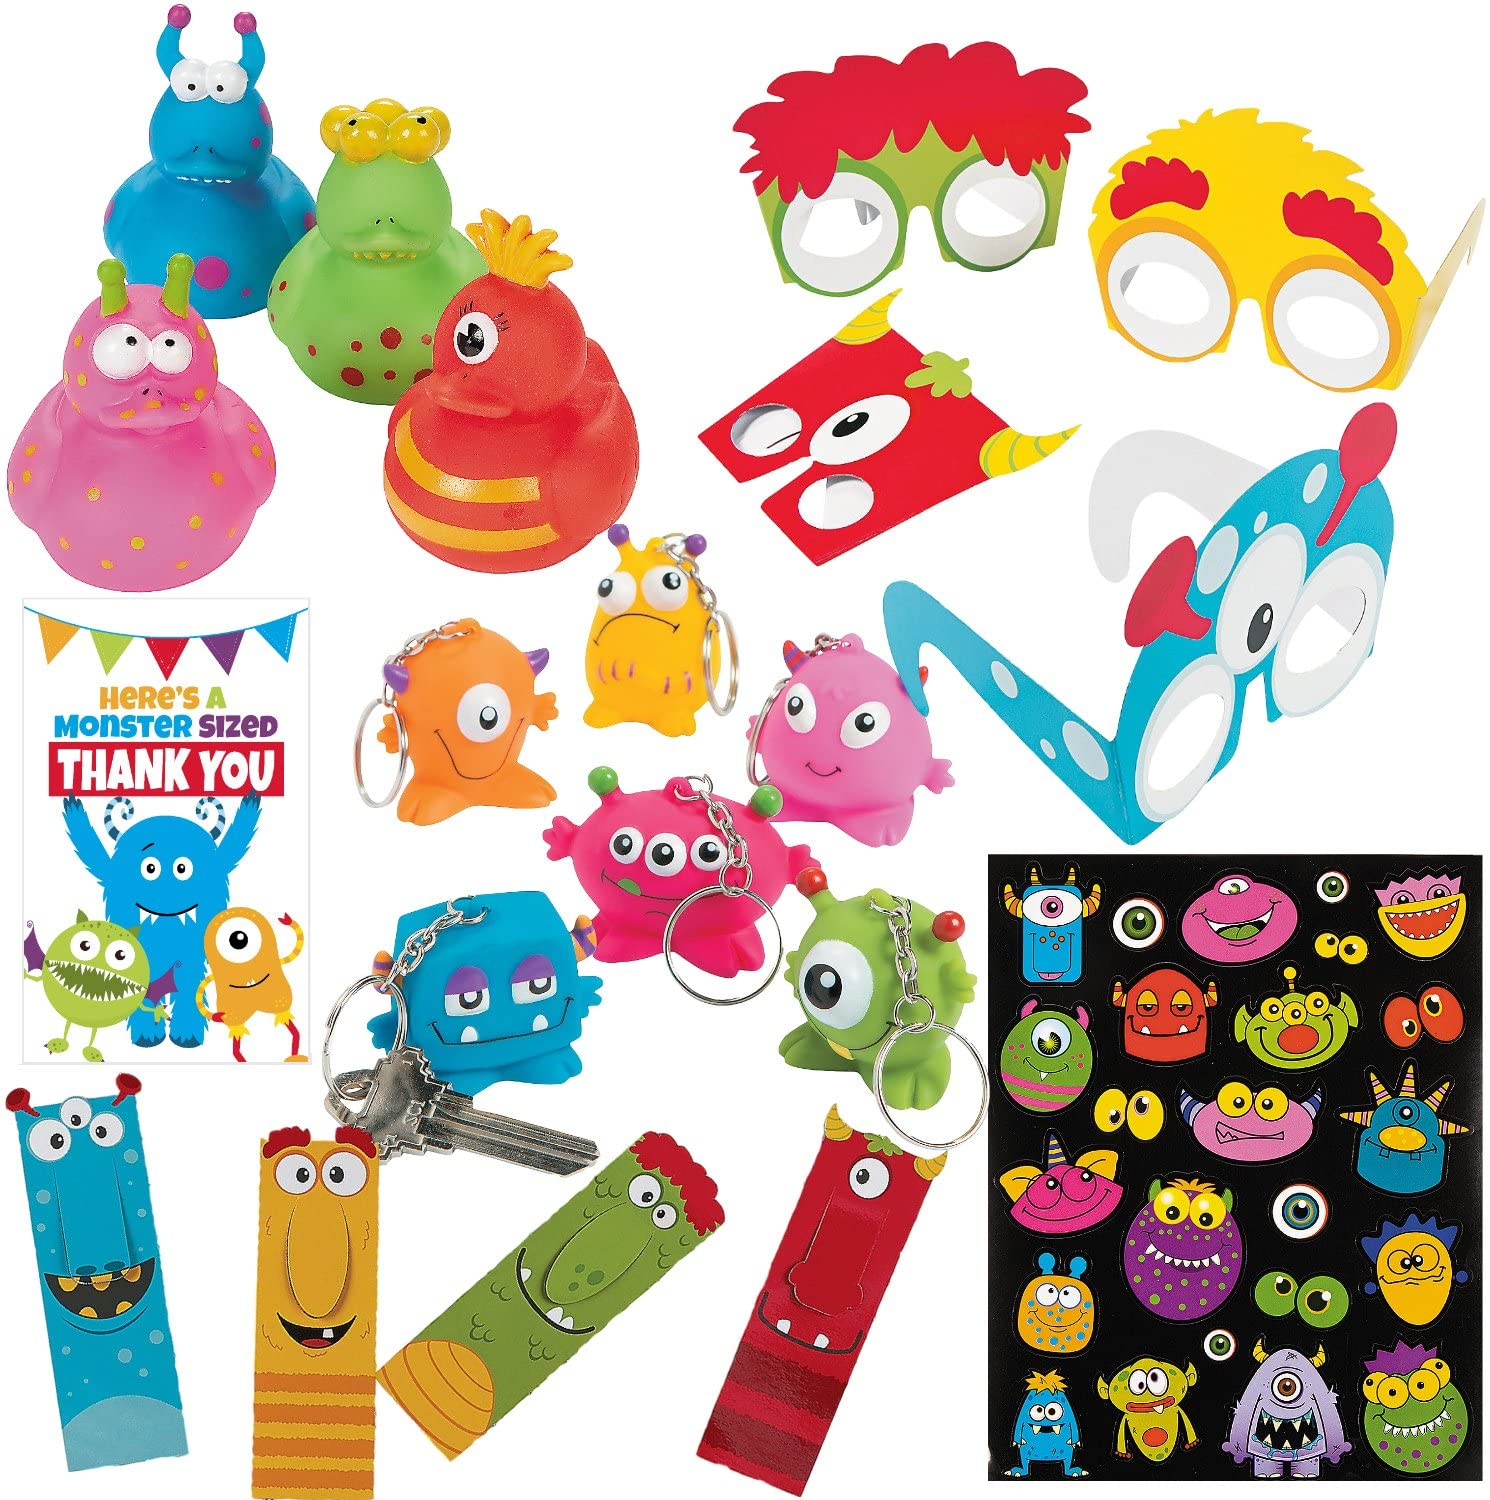 Monster Party Supplies - 116 Piece Kids Birthday Party Favors Bundle - (12) Monster Rubber Ducks, (12) Party Glasses, (12) Keychains, (48) Bookmarks, (12) Sticker Sheets, (20) Party Favor Tags